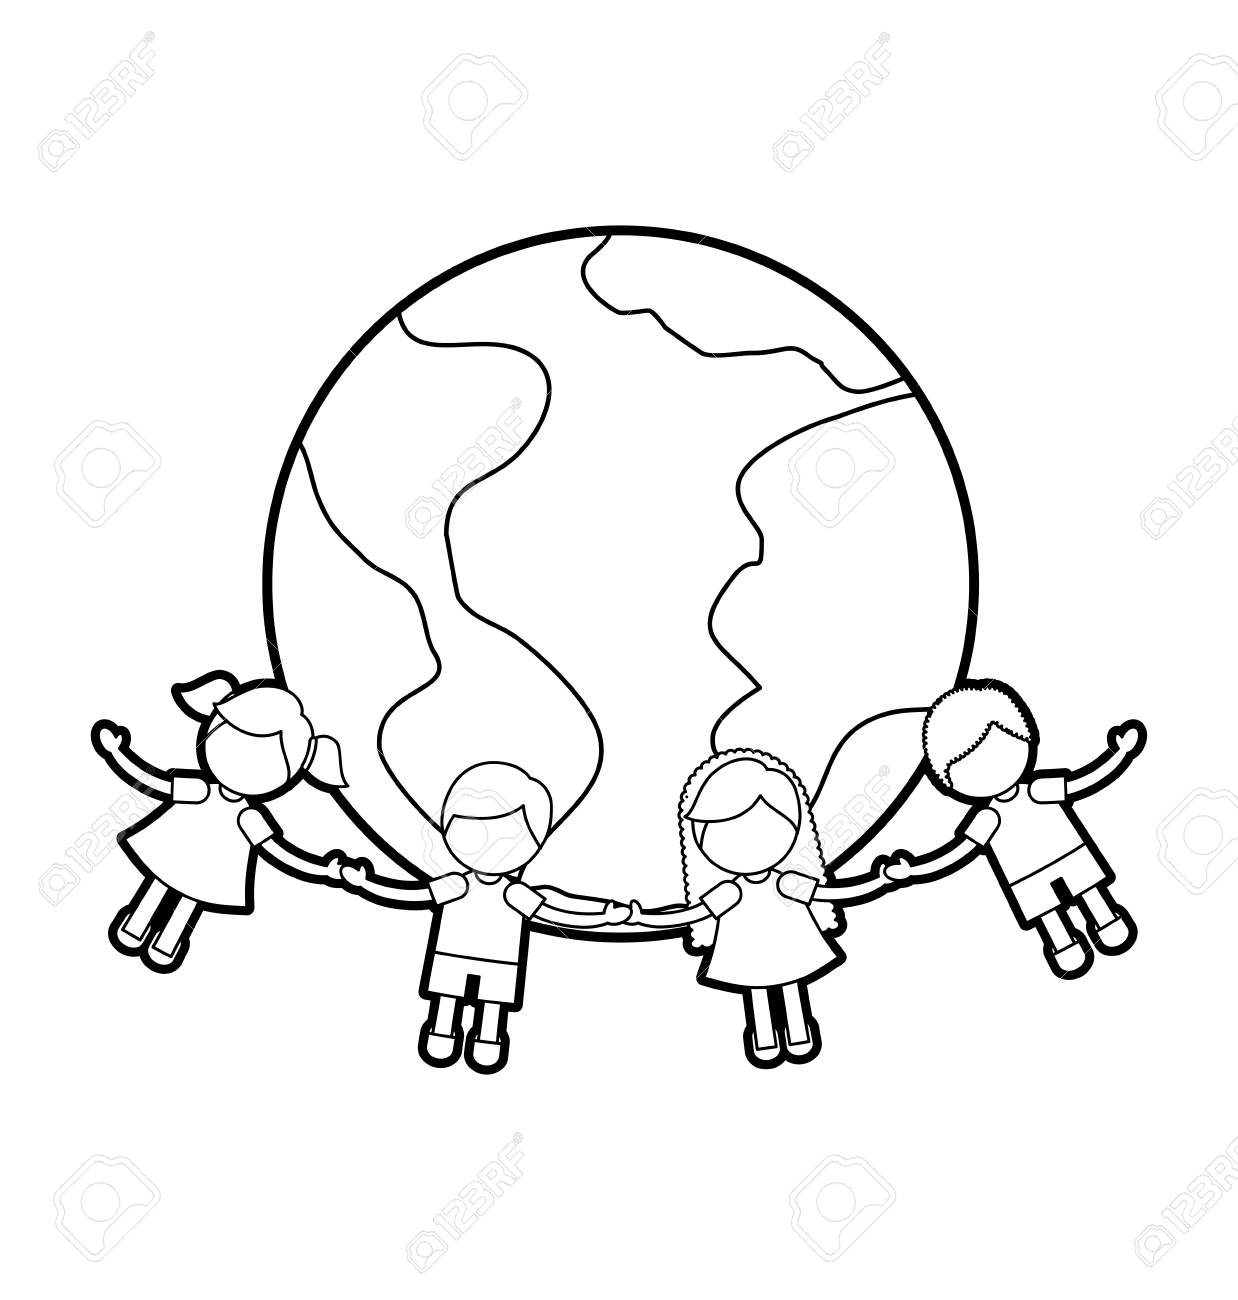 children holding hands around the world vector illustration design